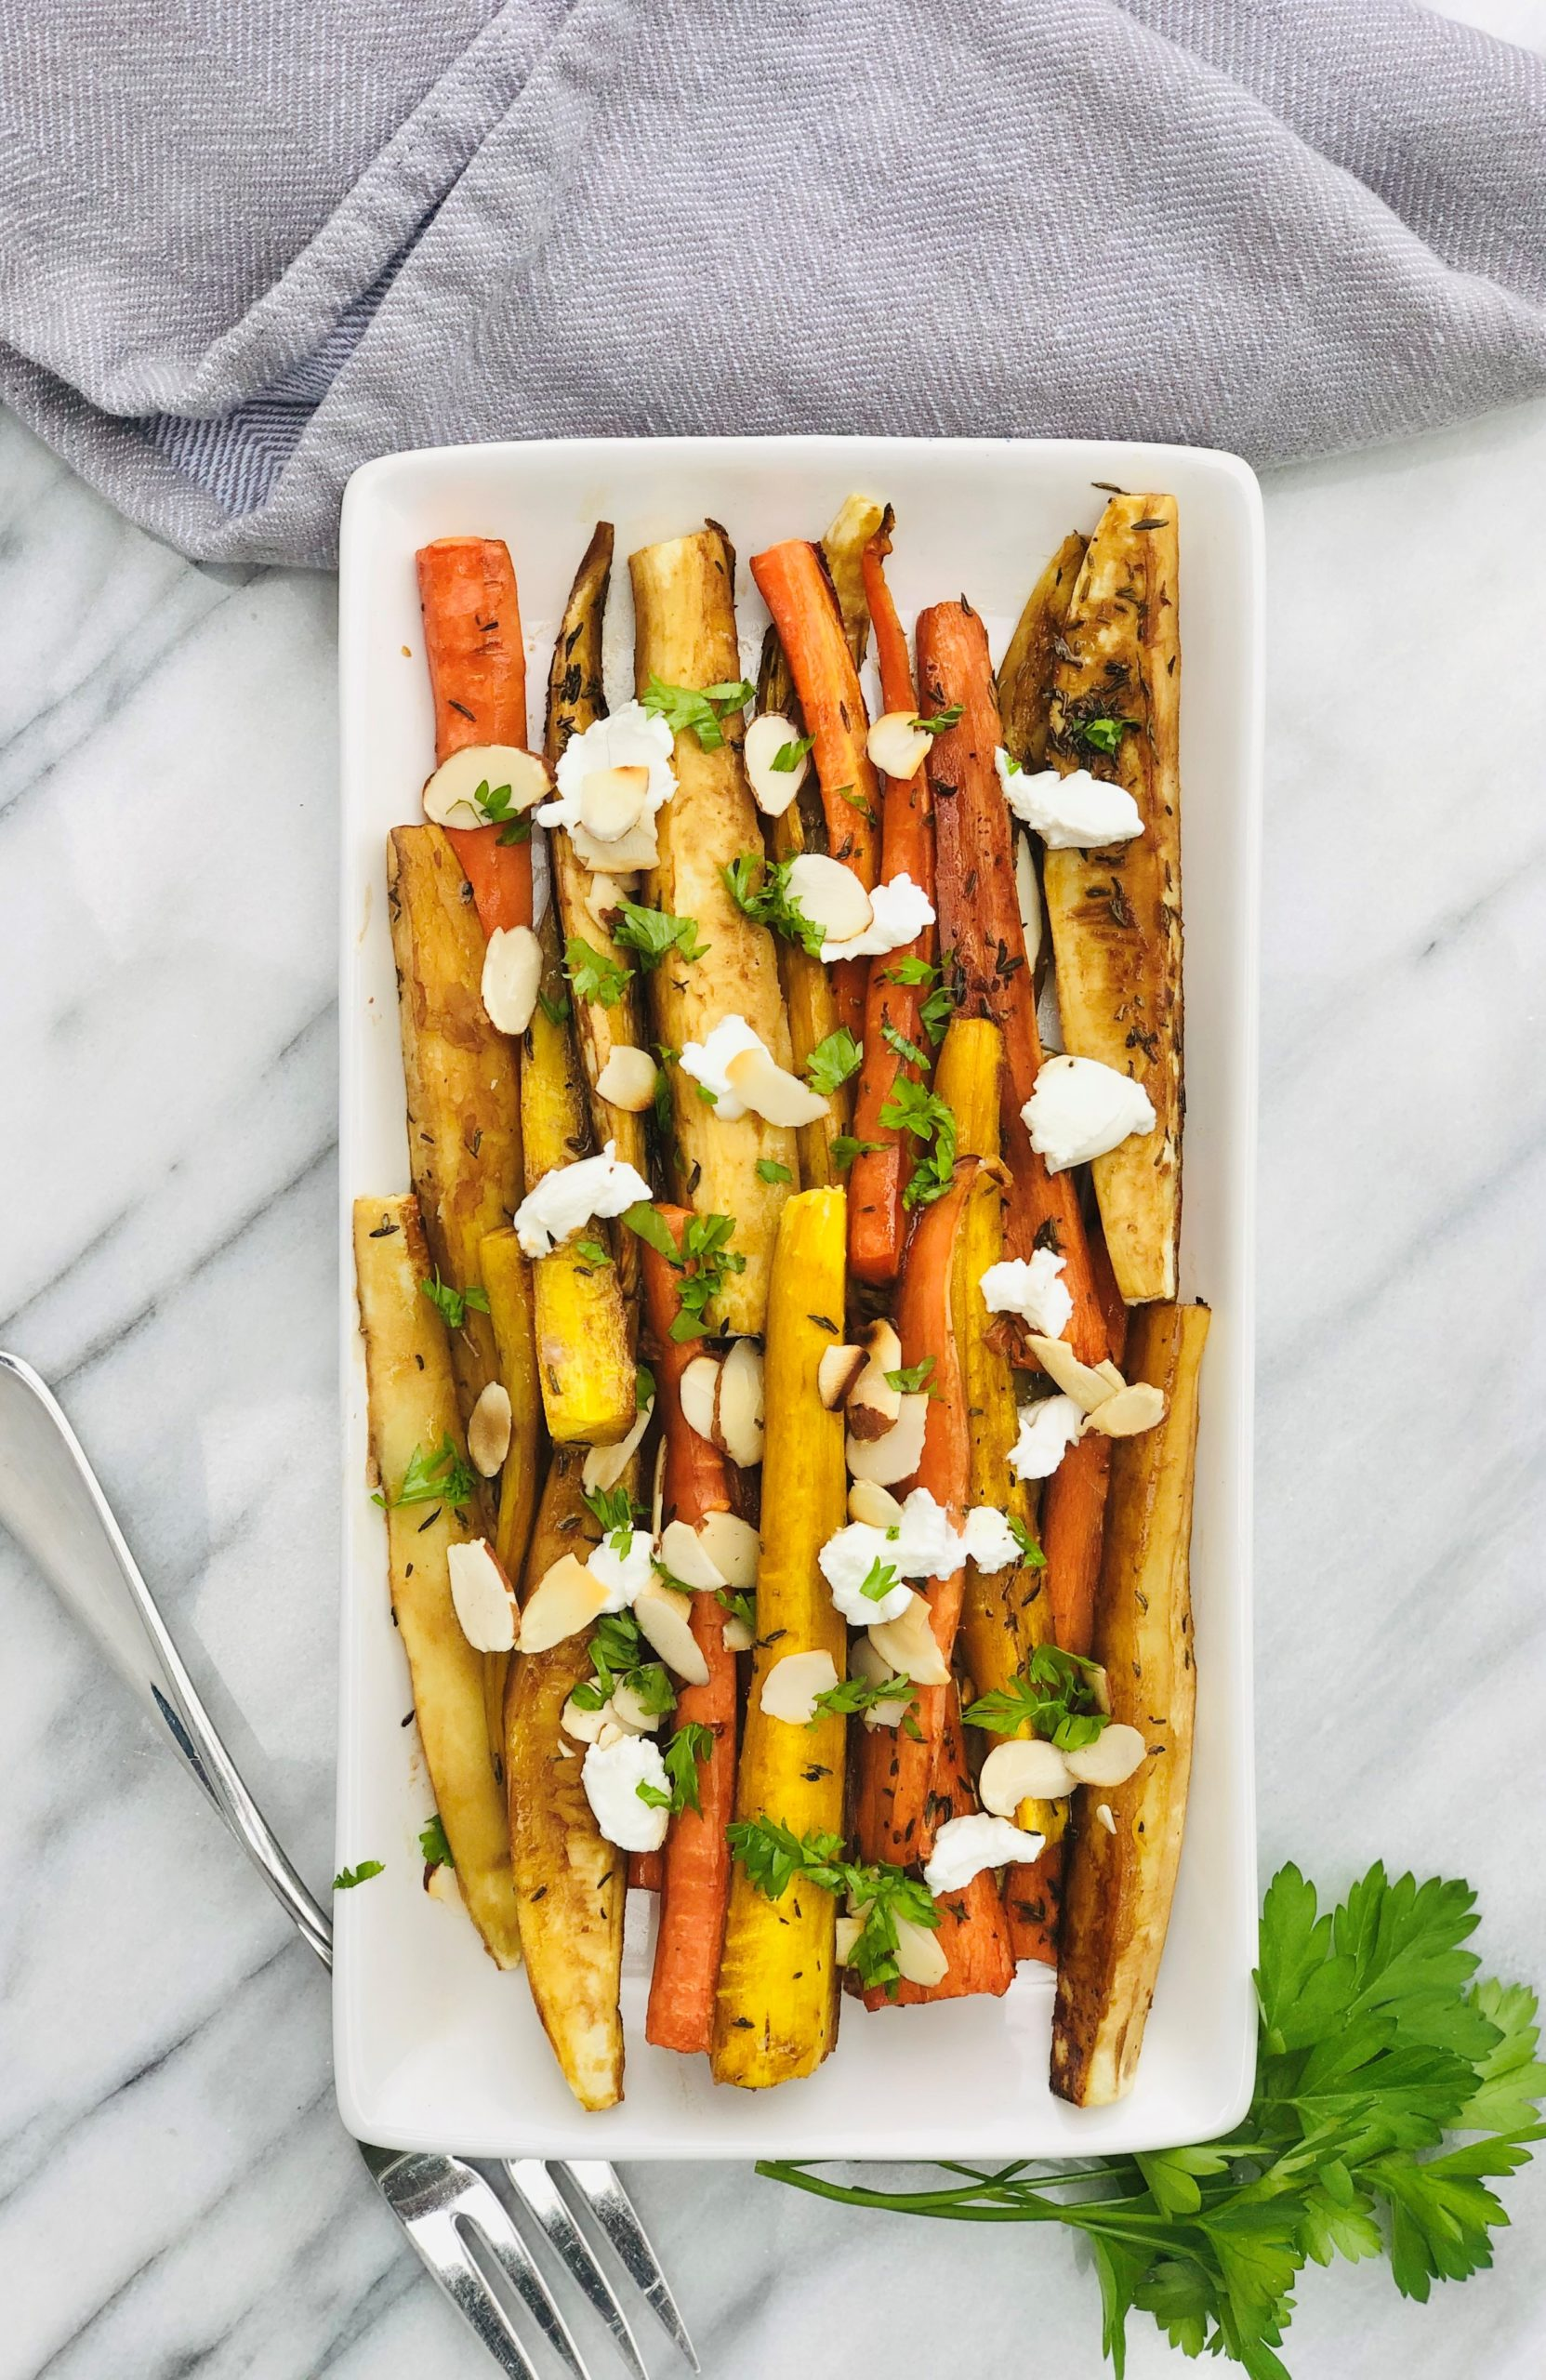 Roasted Balsamic Carrots with Goat Cheese and Almonds